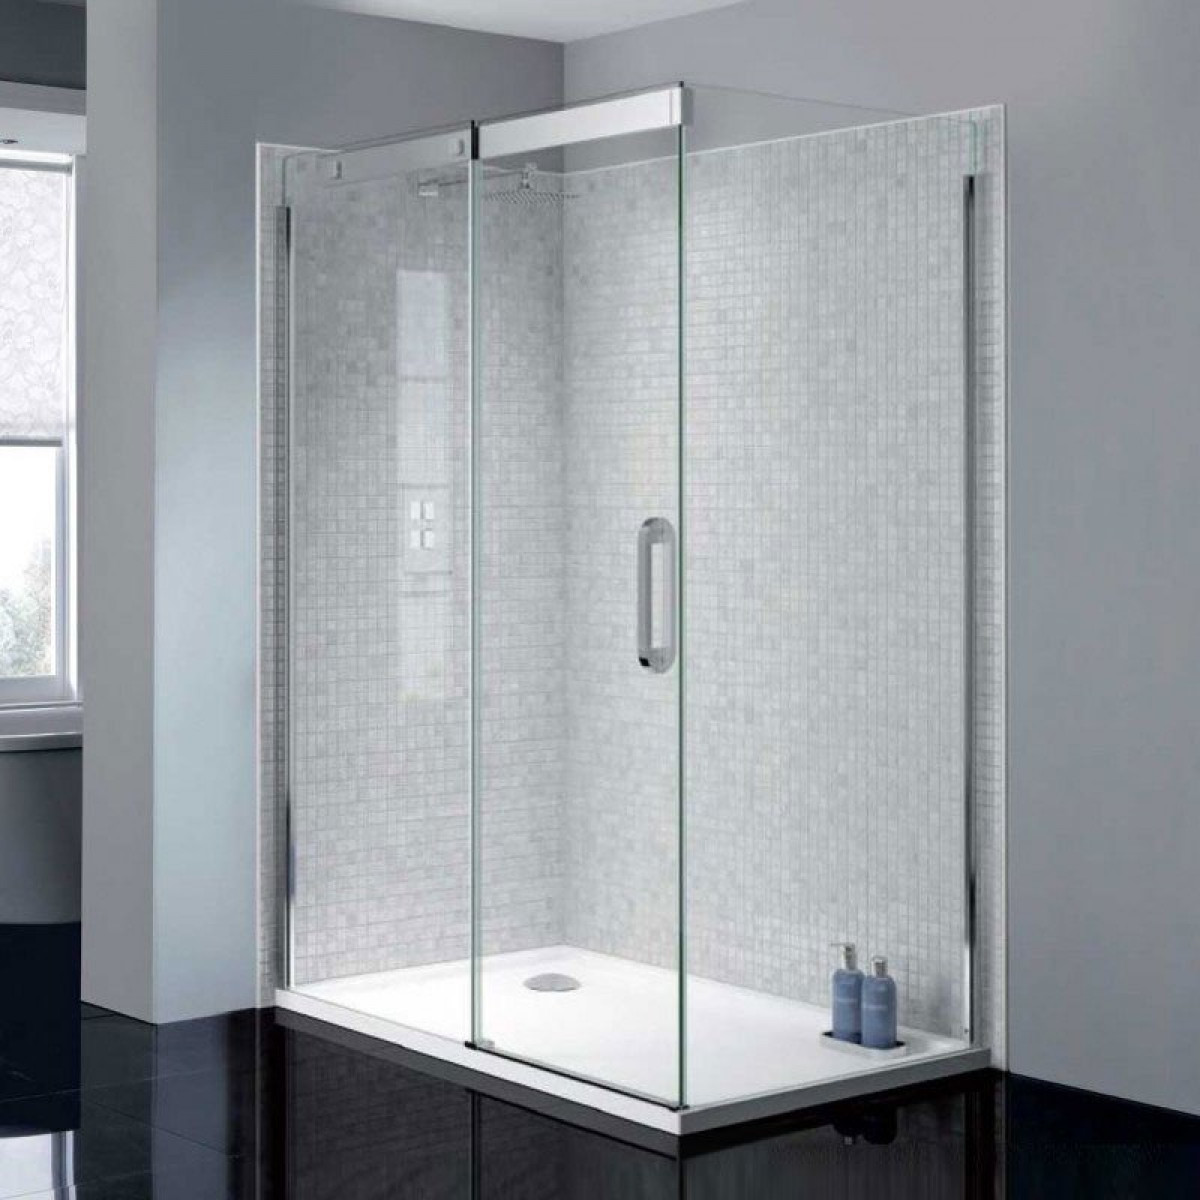 April prestige2 frameless 1400mm sliding shower door for 1400 sliding shower door